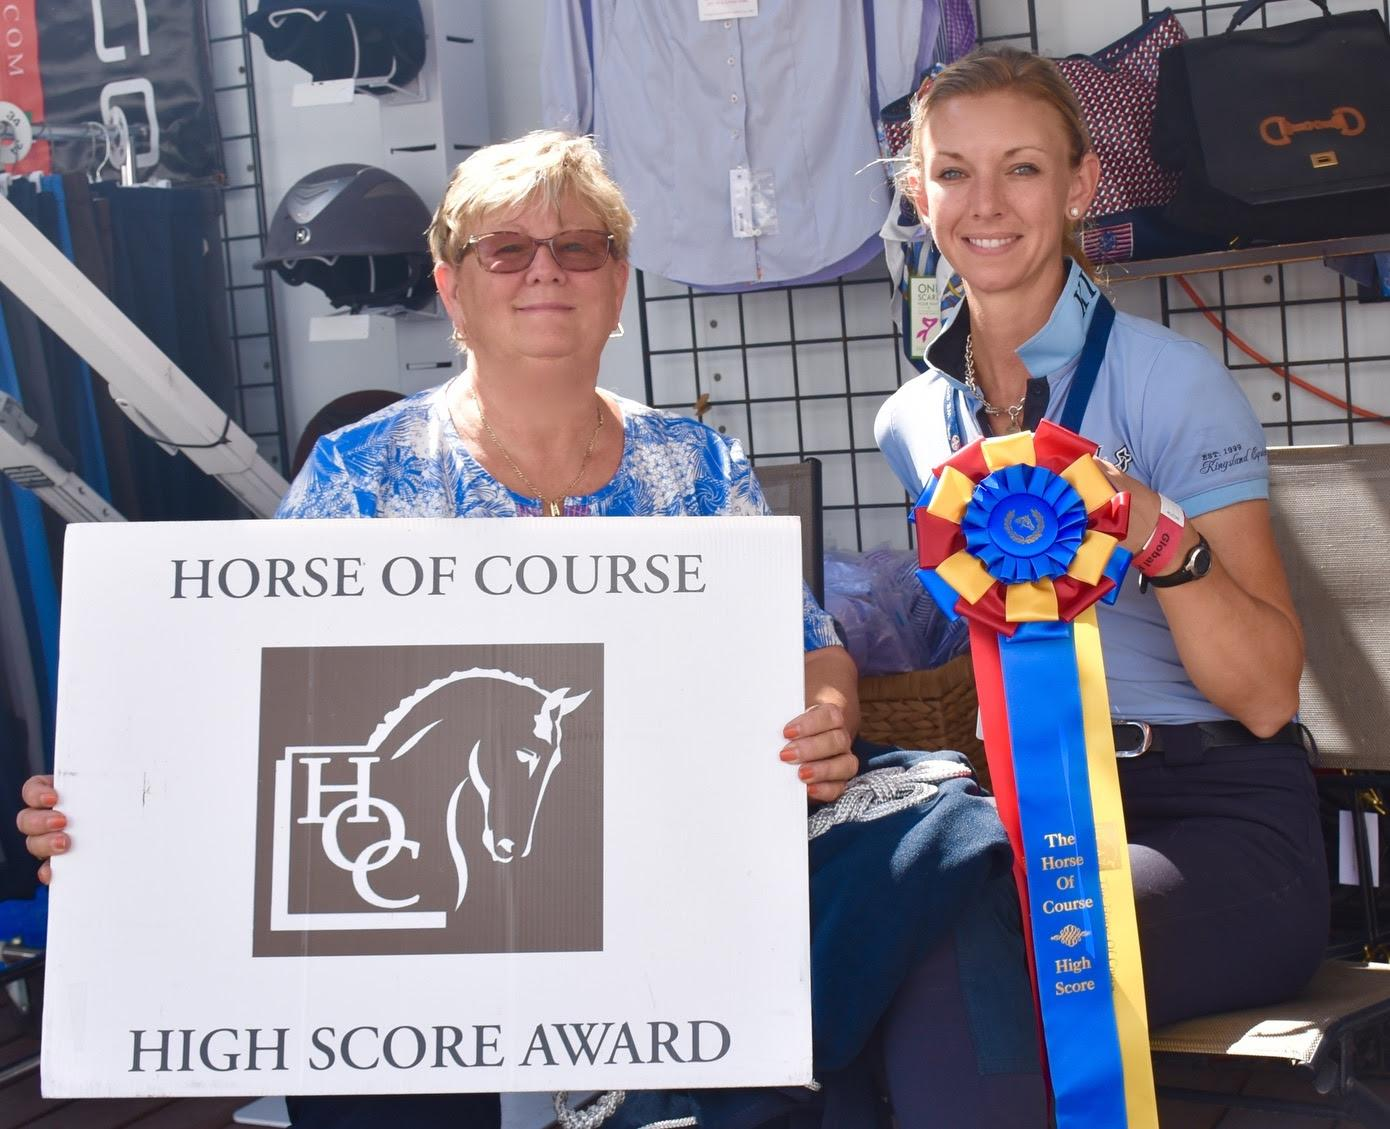 laura_graves-usa-beth_haist-_the_horse_of_course-high_score_award-agdf-2018.jpg